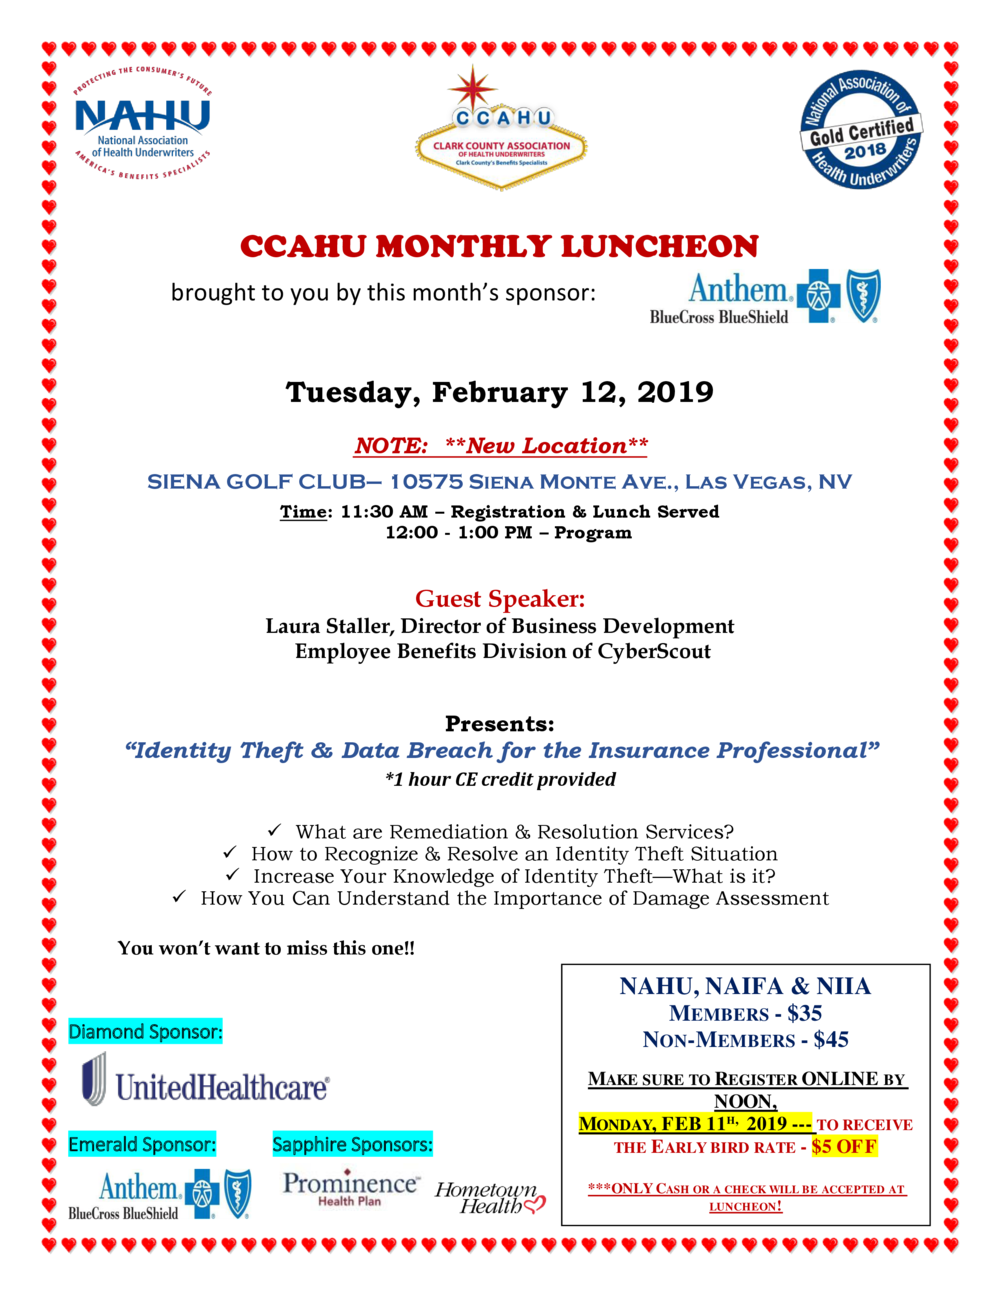 Flyer_Feb_2019__CCAHU_Luncheon.png